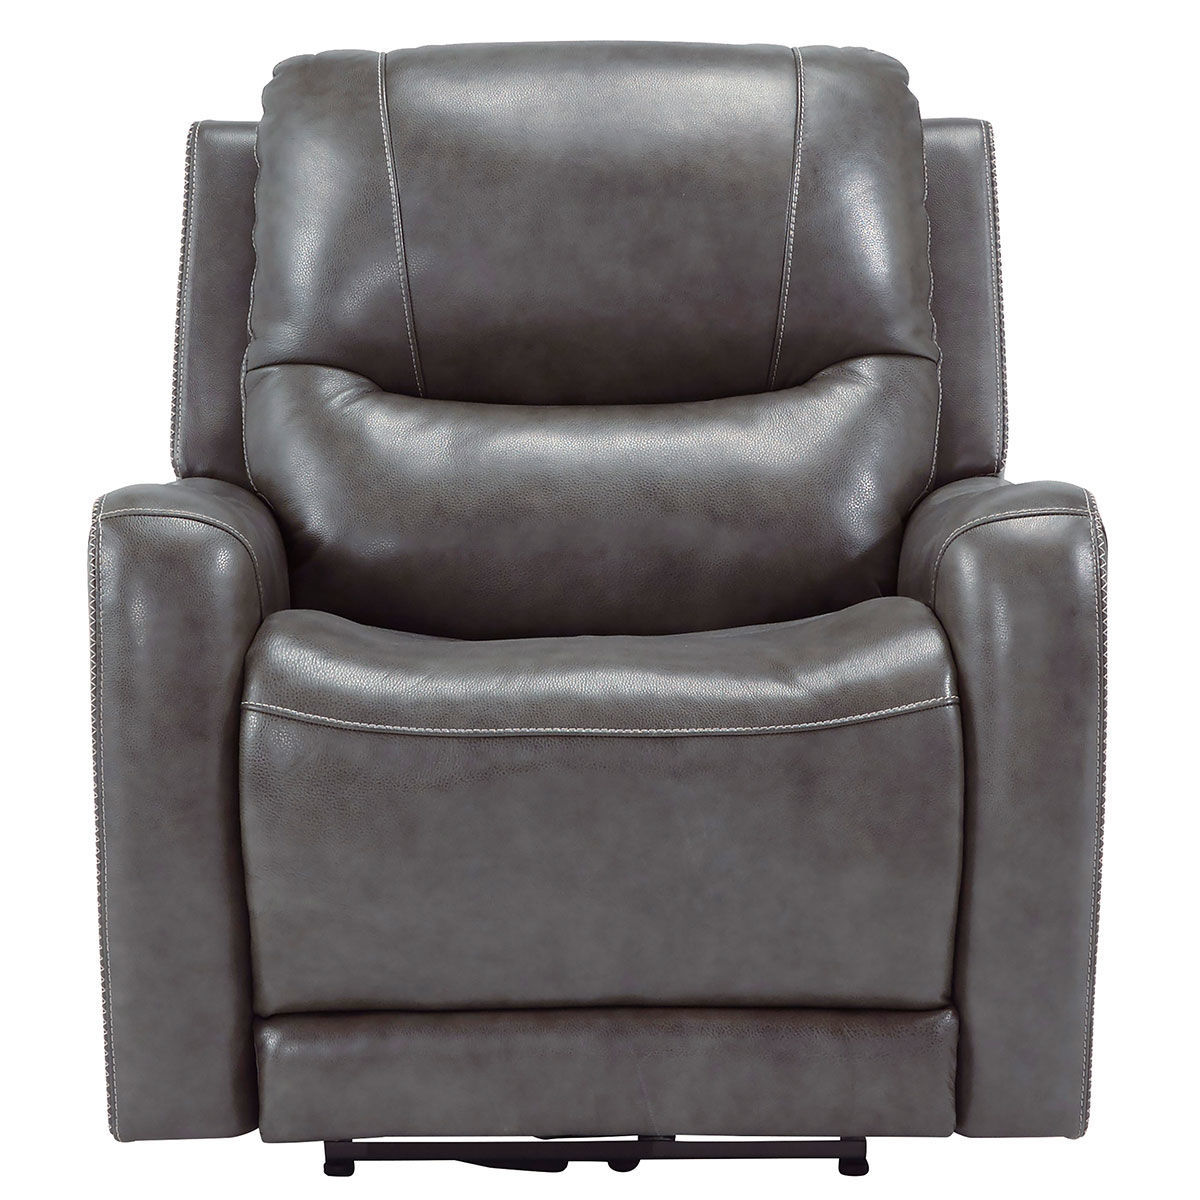 Picture of GRAND GREY WALL RECLINER W/ POWER HEADREST & MASSAGE